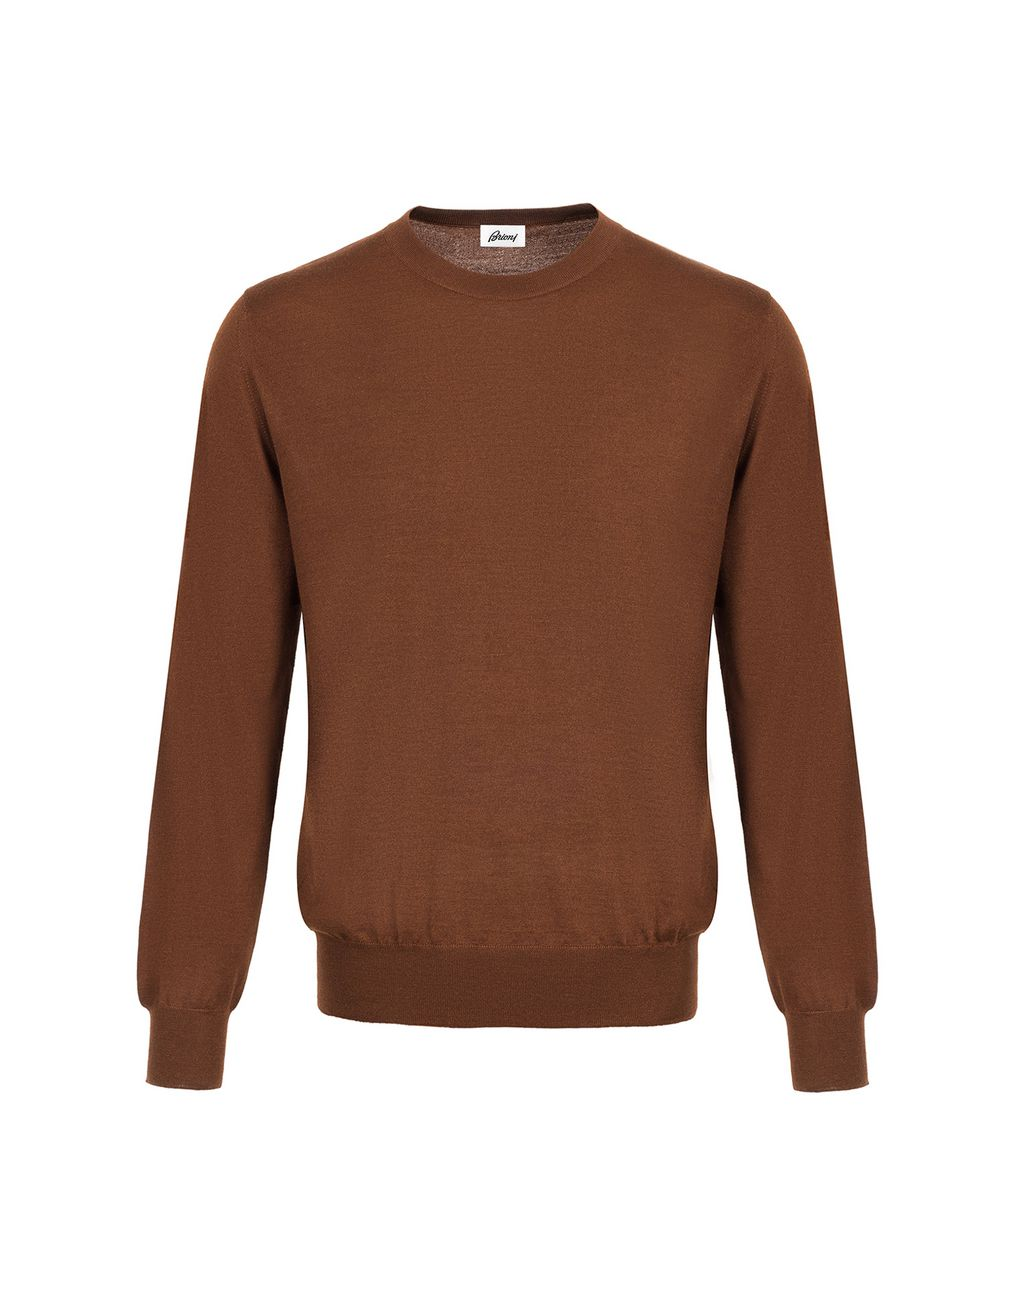 BRIONI Havana Brown Crew-Neck Sweater Knitwear Man f